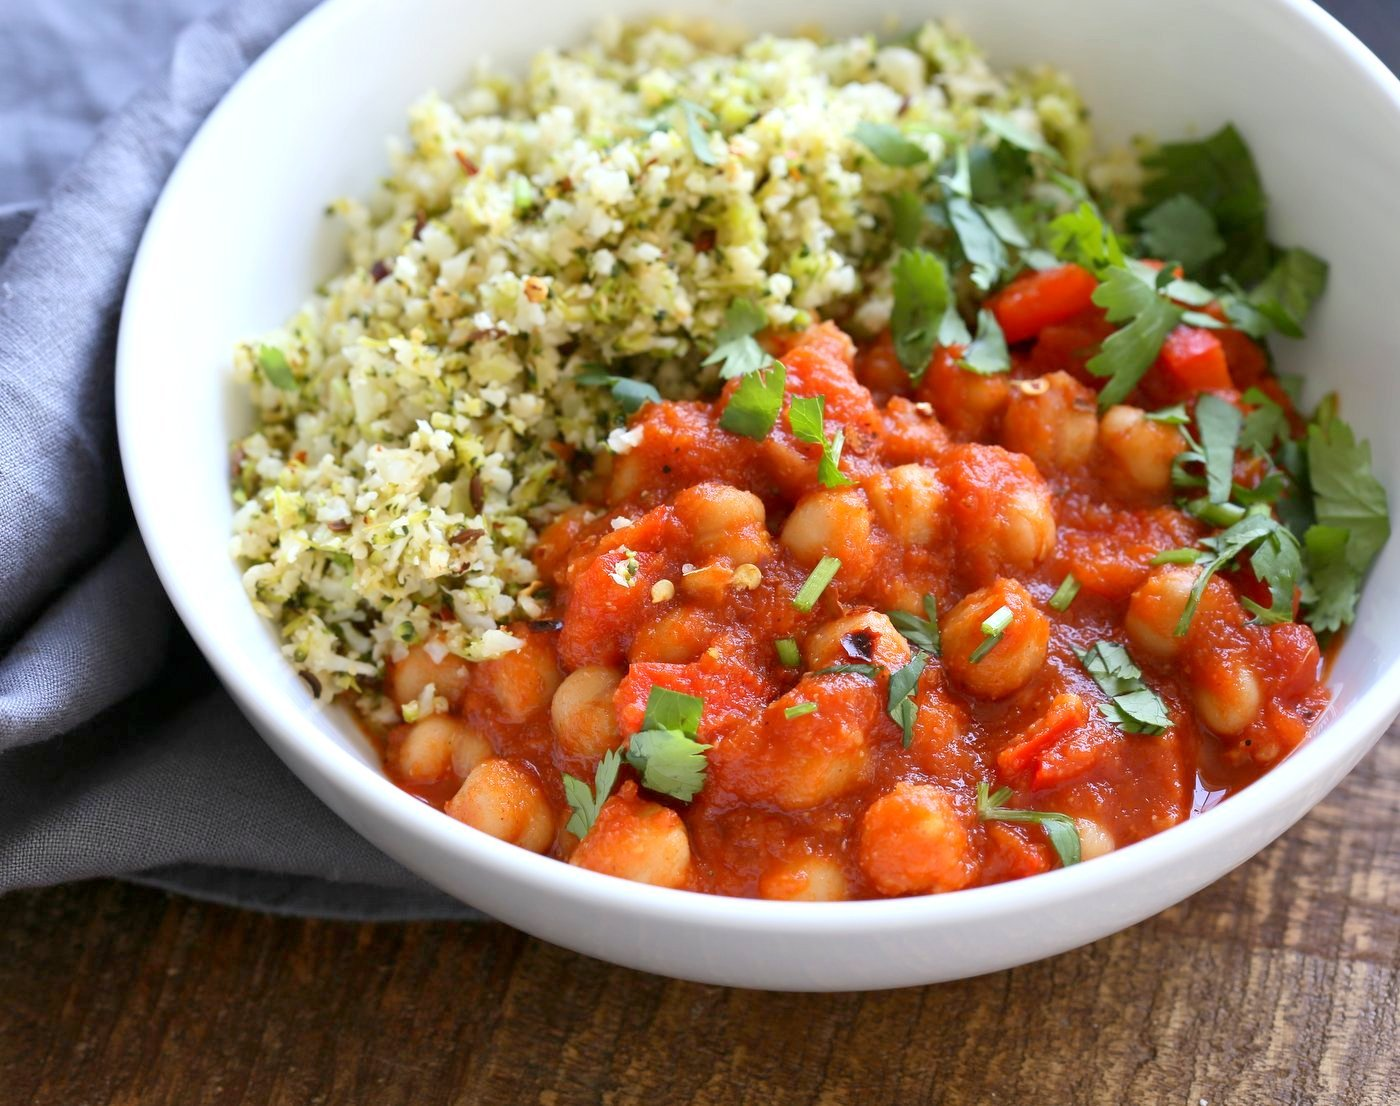 Flavorful Spanish Chickpea Stew with Cumin scented Cauliflower Broccoli Rice. Smoky tomatoey Chickpea Stew can be served over rice or grains or cauliflower or broccoli rice. Vegan Gluten-free Nut-free Grain-free Soy-free Recipe | VeganRicha.com